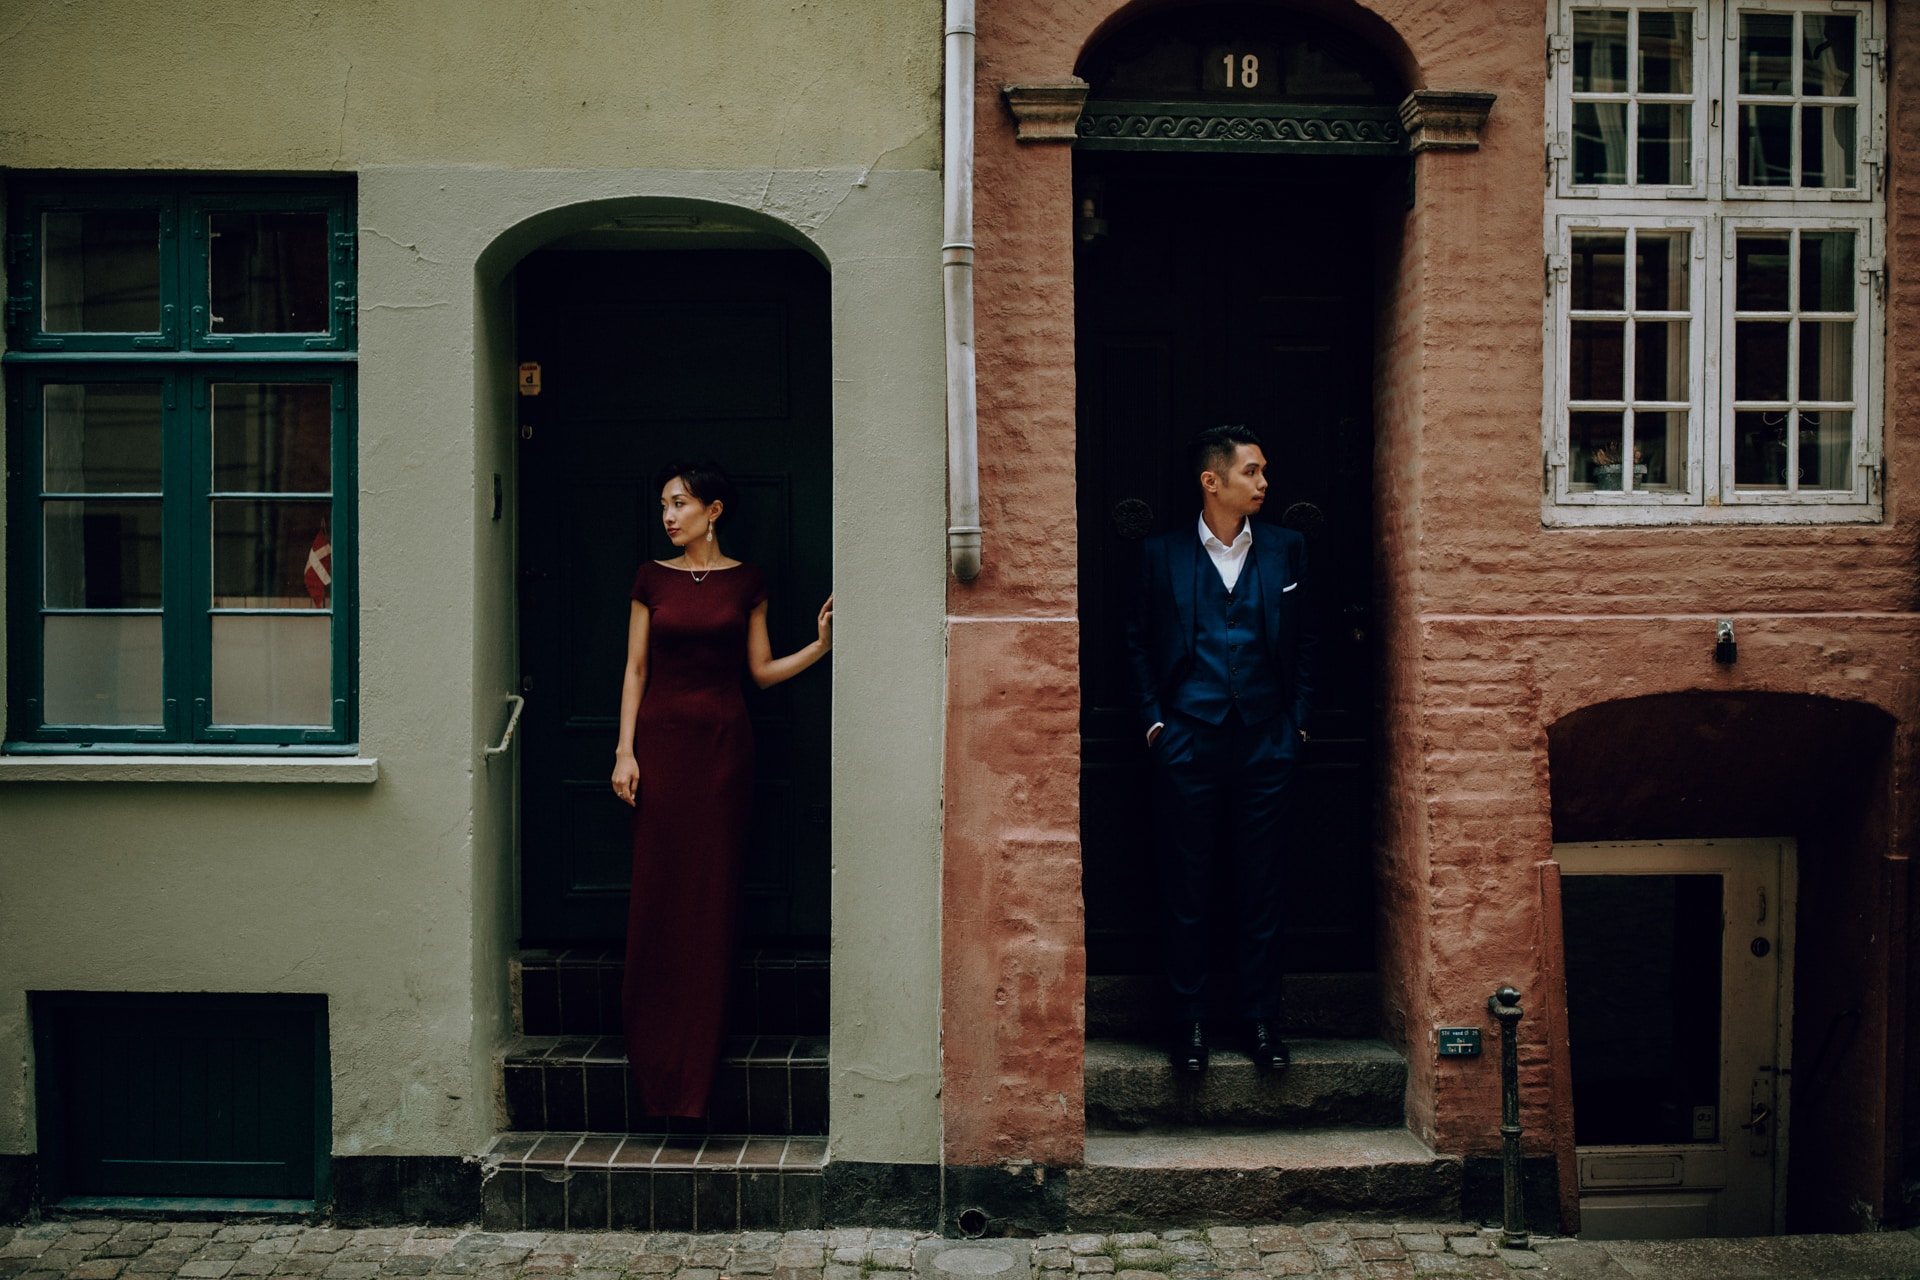 The bride and the groom are each standing in an entrance of an old building.